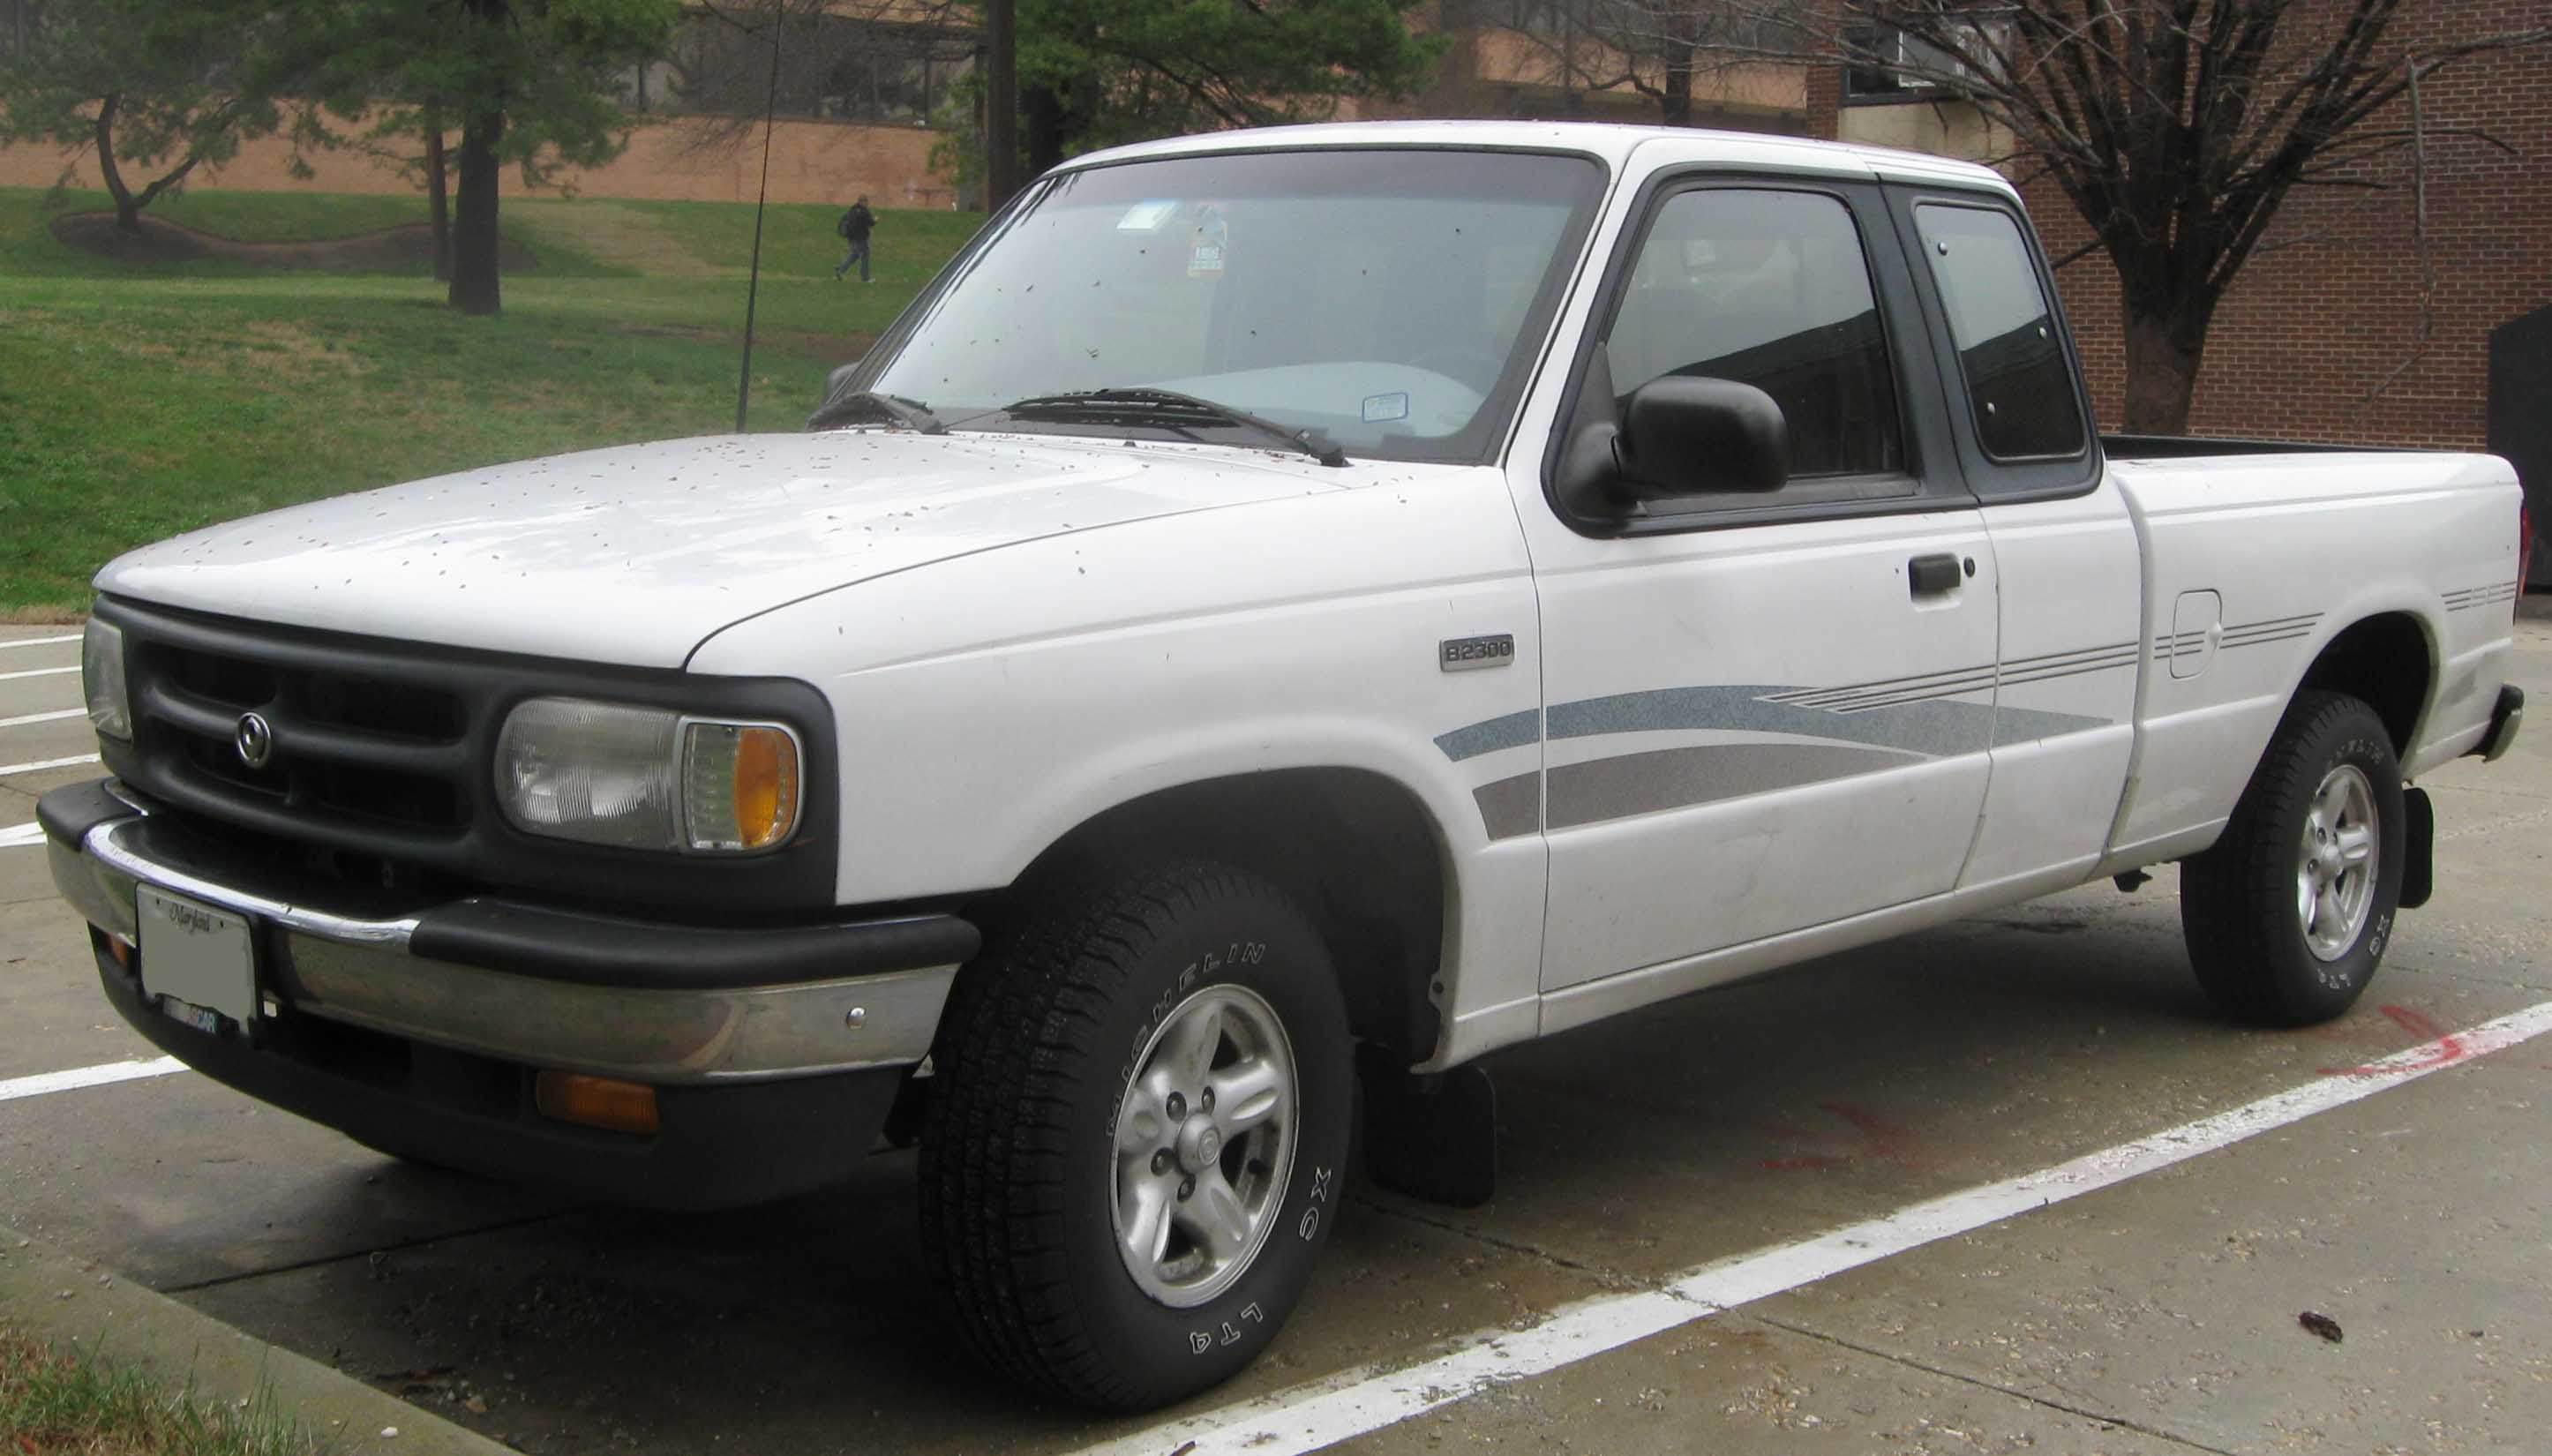 File:Mazda B2300 extended cab.jpg